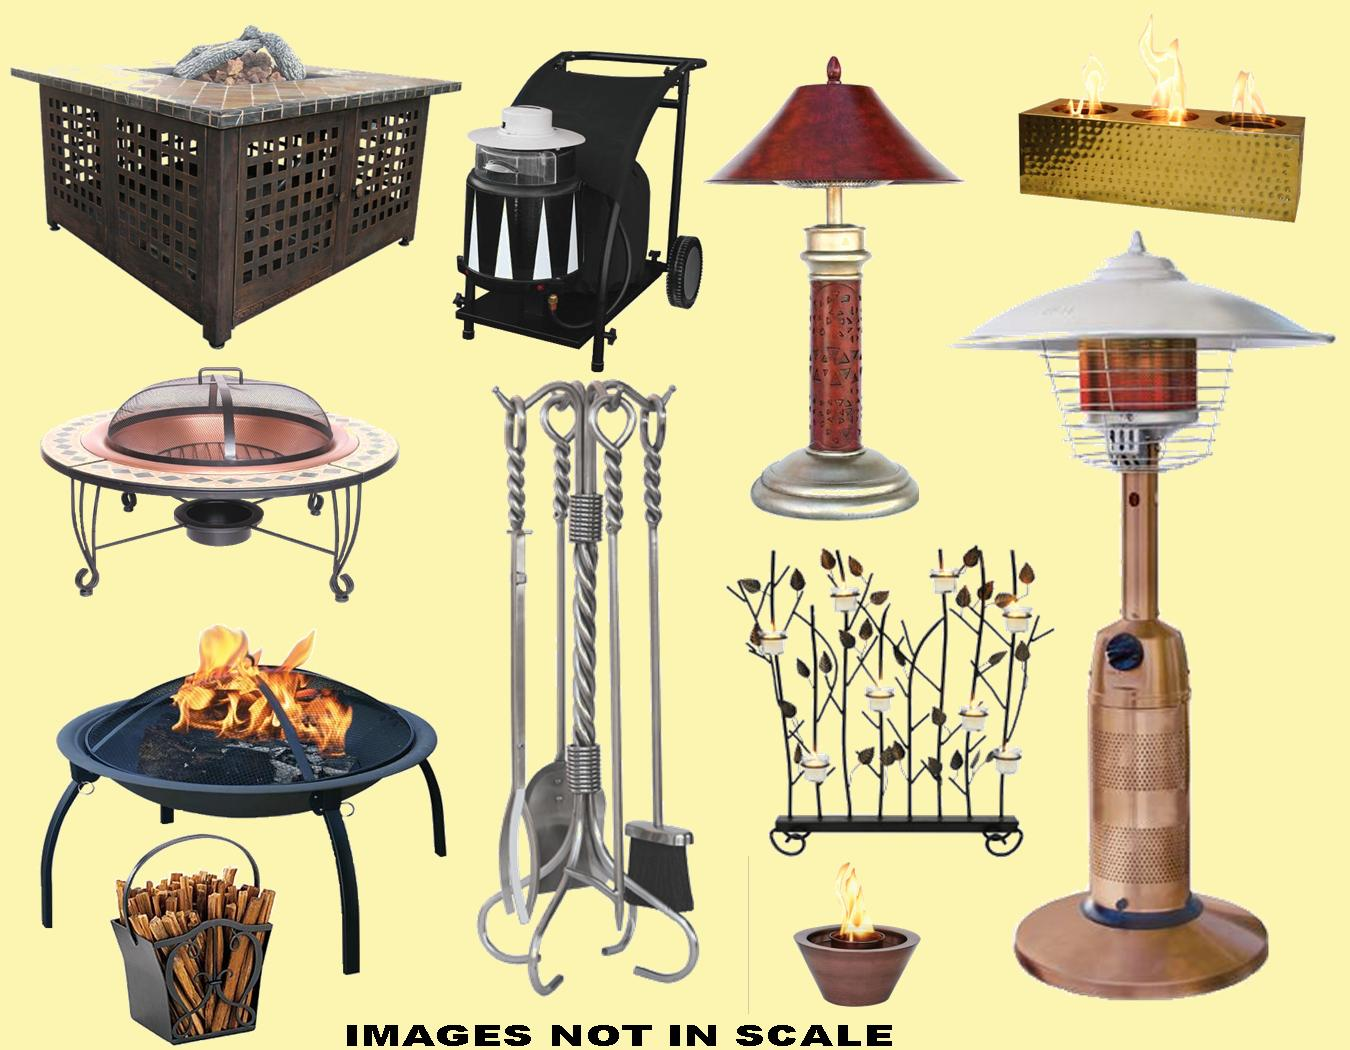 Fireplace Tools Fireplace Accessories Fireplace Screens Patio Fire Pits